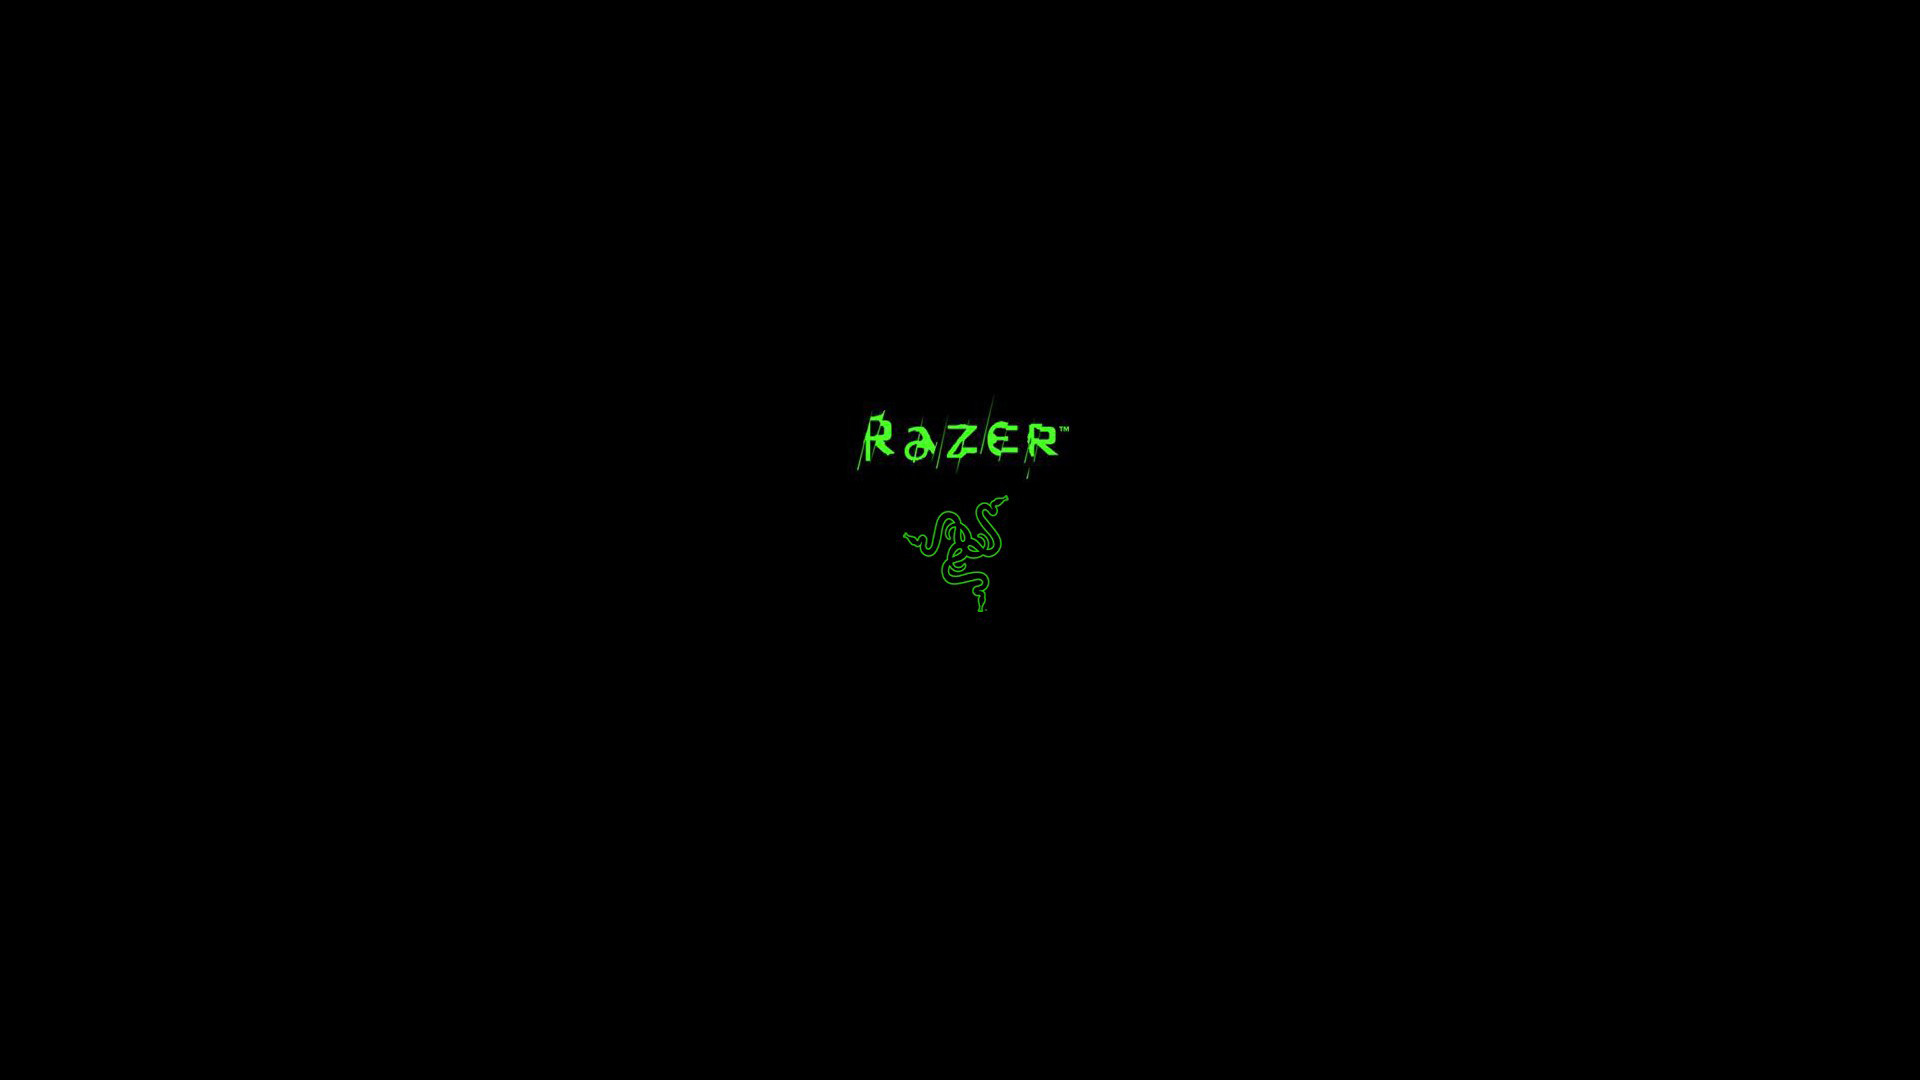 The Best Full Hd Sfondi Razer Images